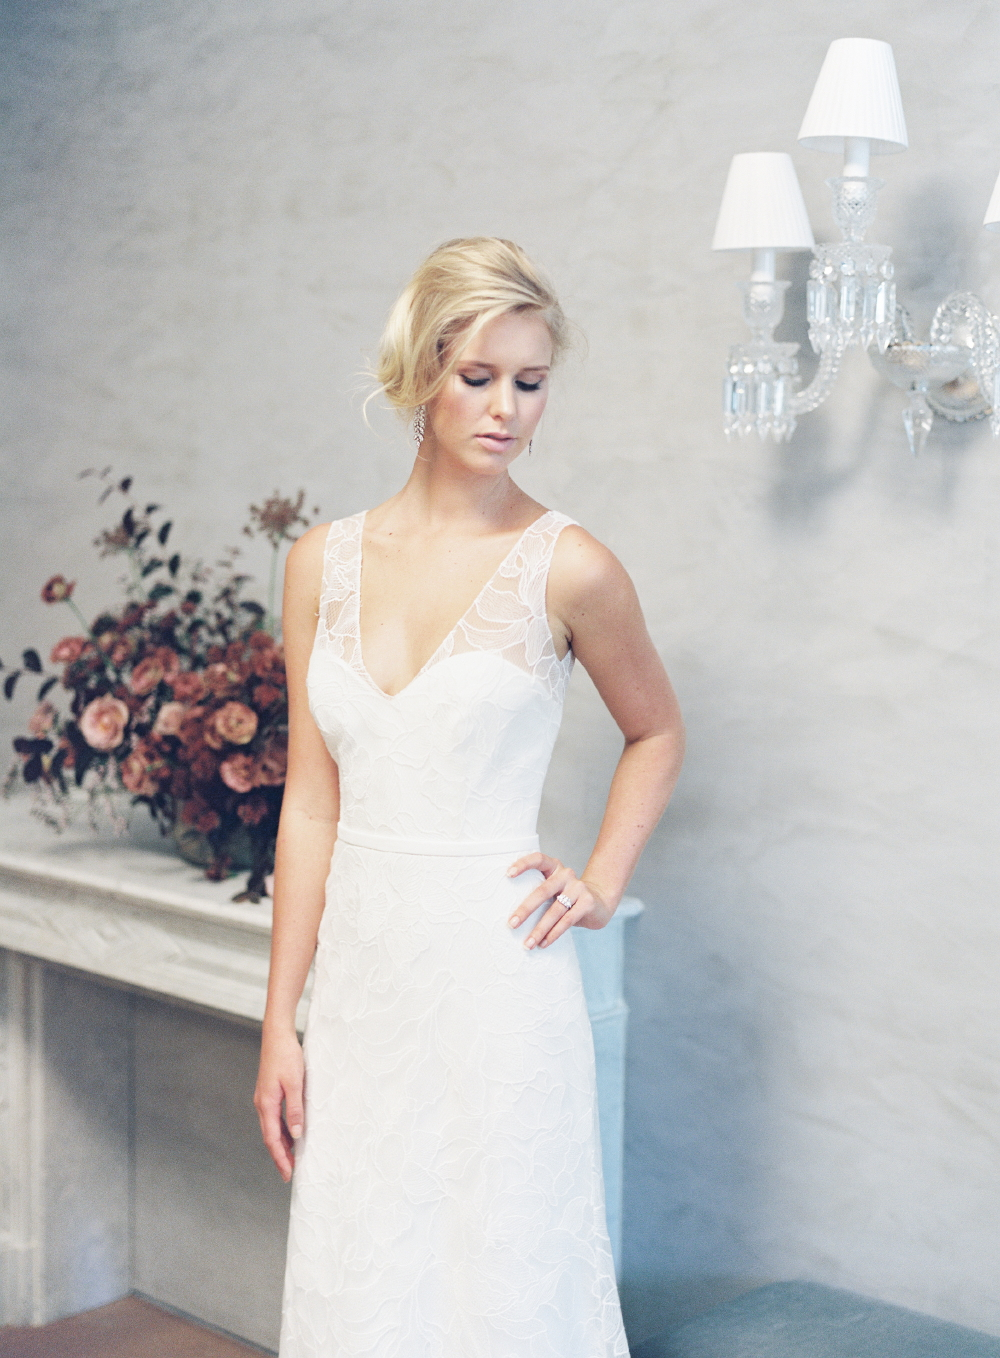 Alyona bridal gown by Tanya Anic